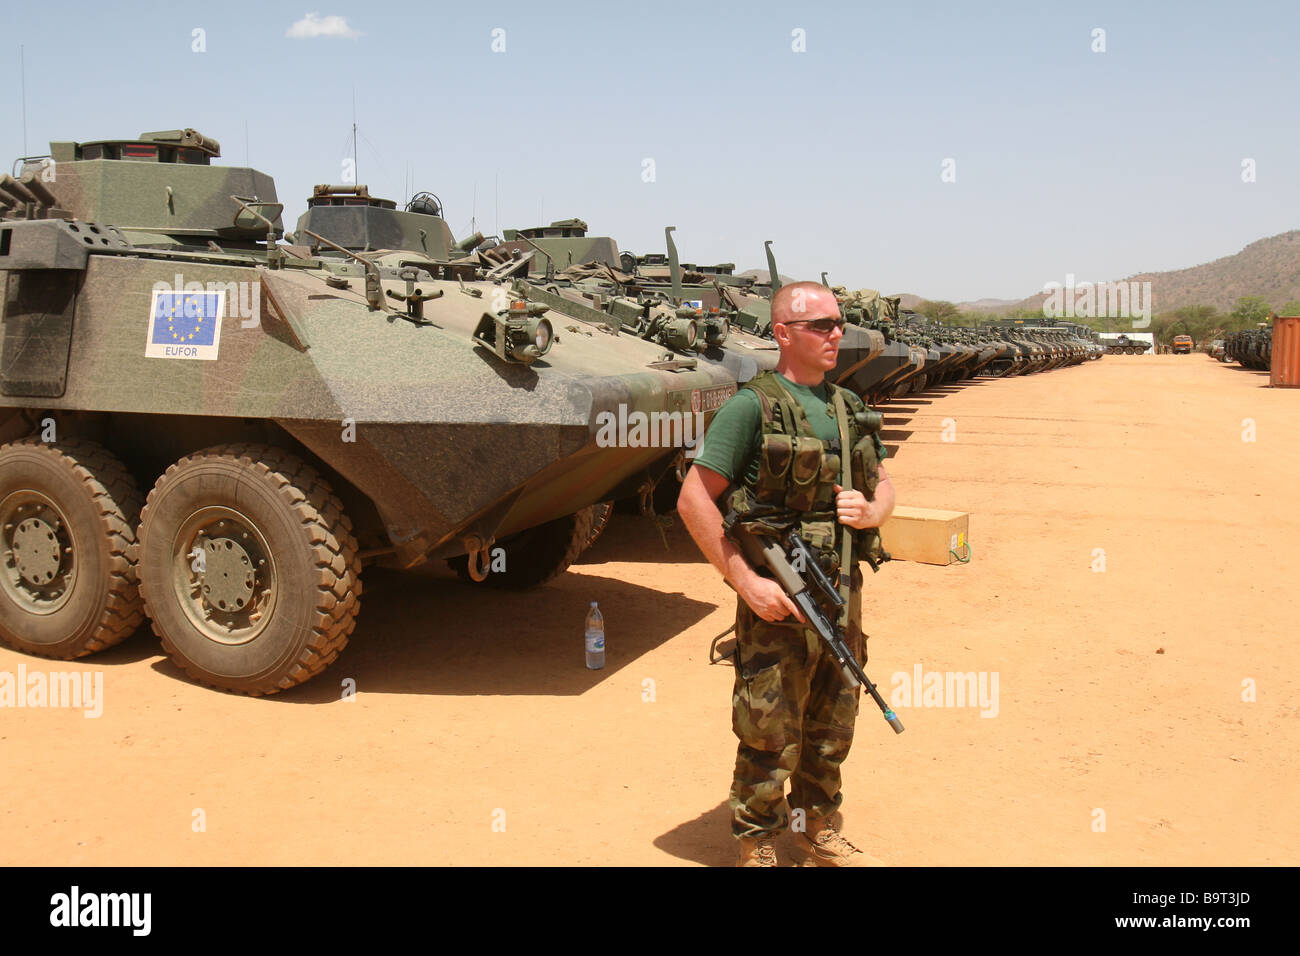 Irish Army soldier on duty in Chad, Africa as part of the EUFOR mission to protest refugees from neighboring Darfur - Stock Image